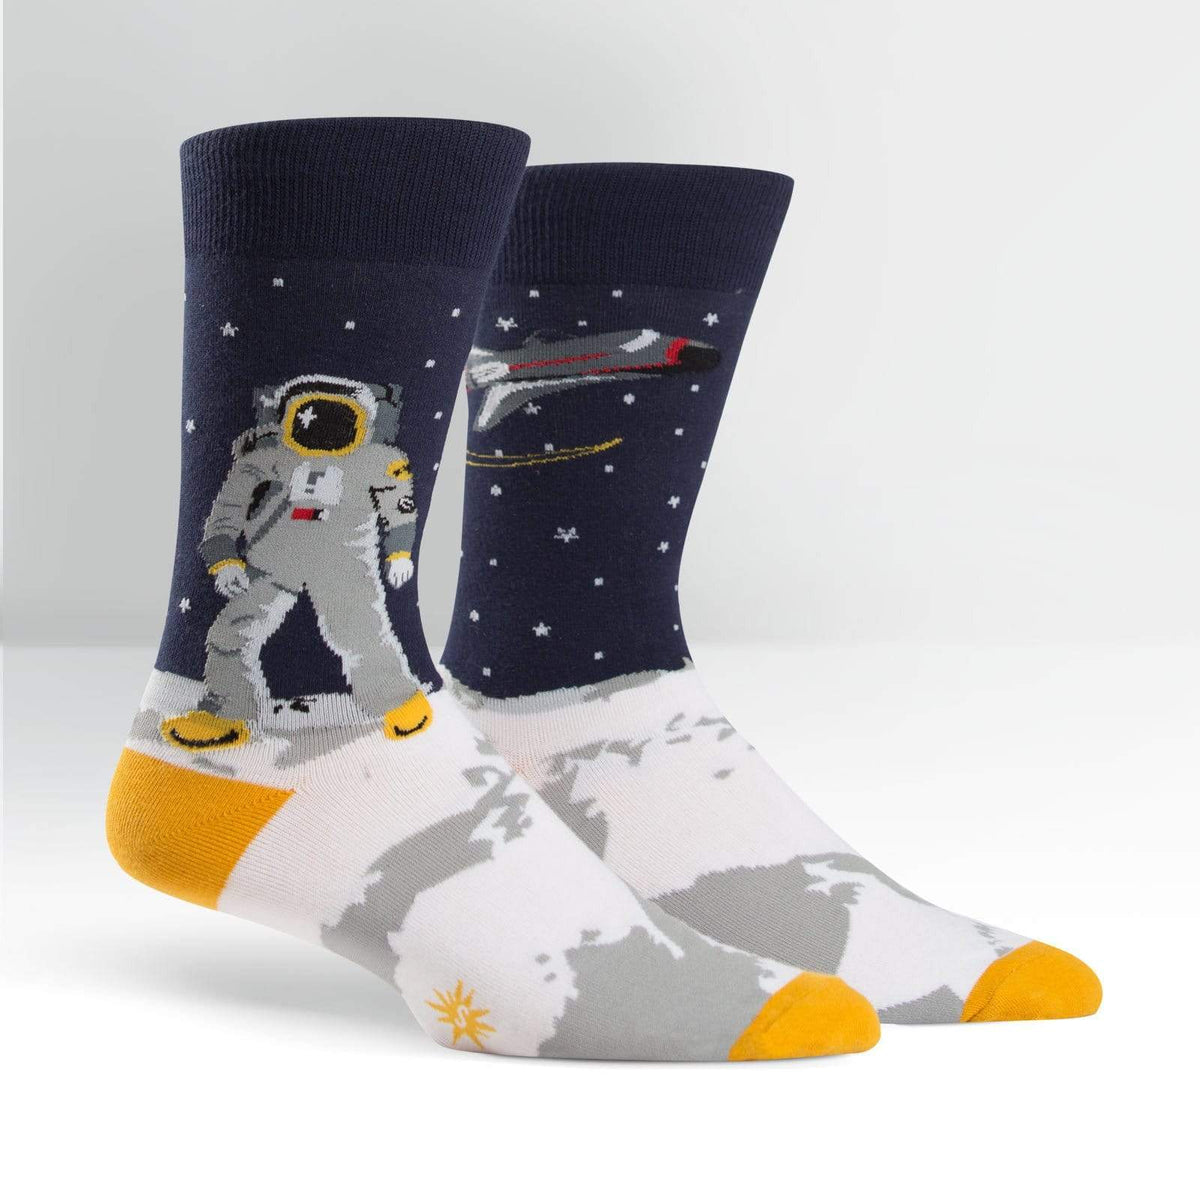 One Giant Leap Astronaut Socks Men's Crew Sock Blue